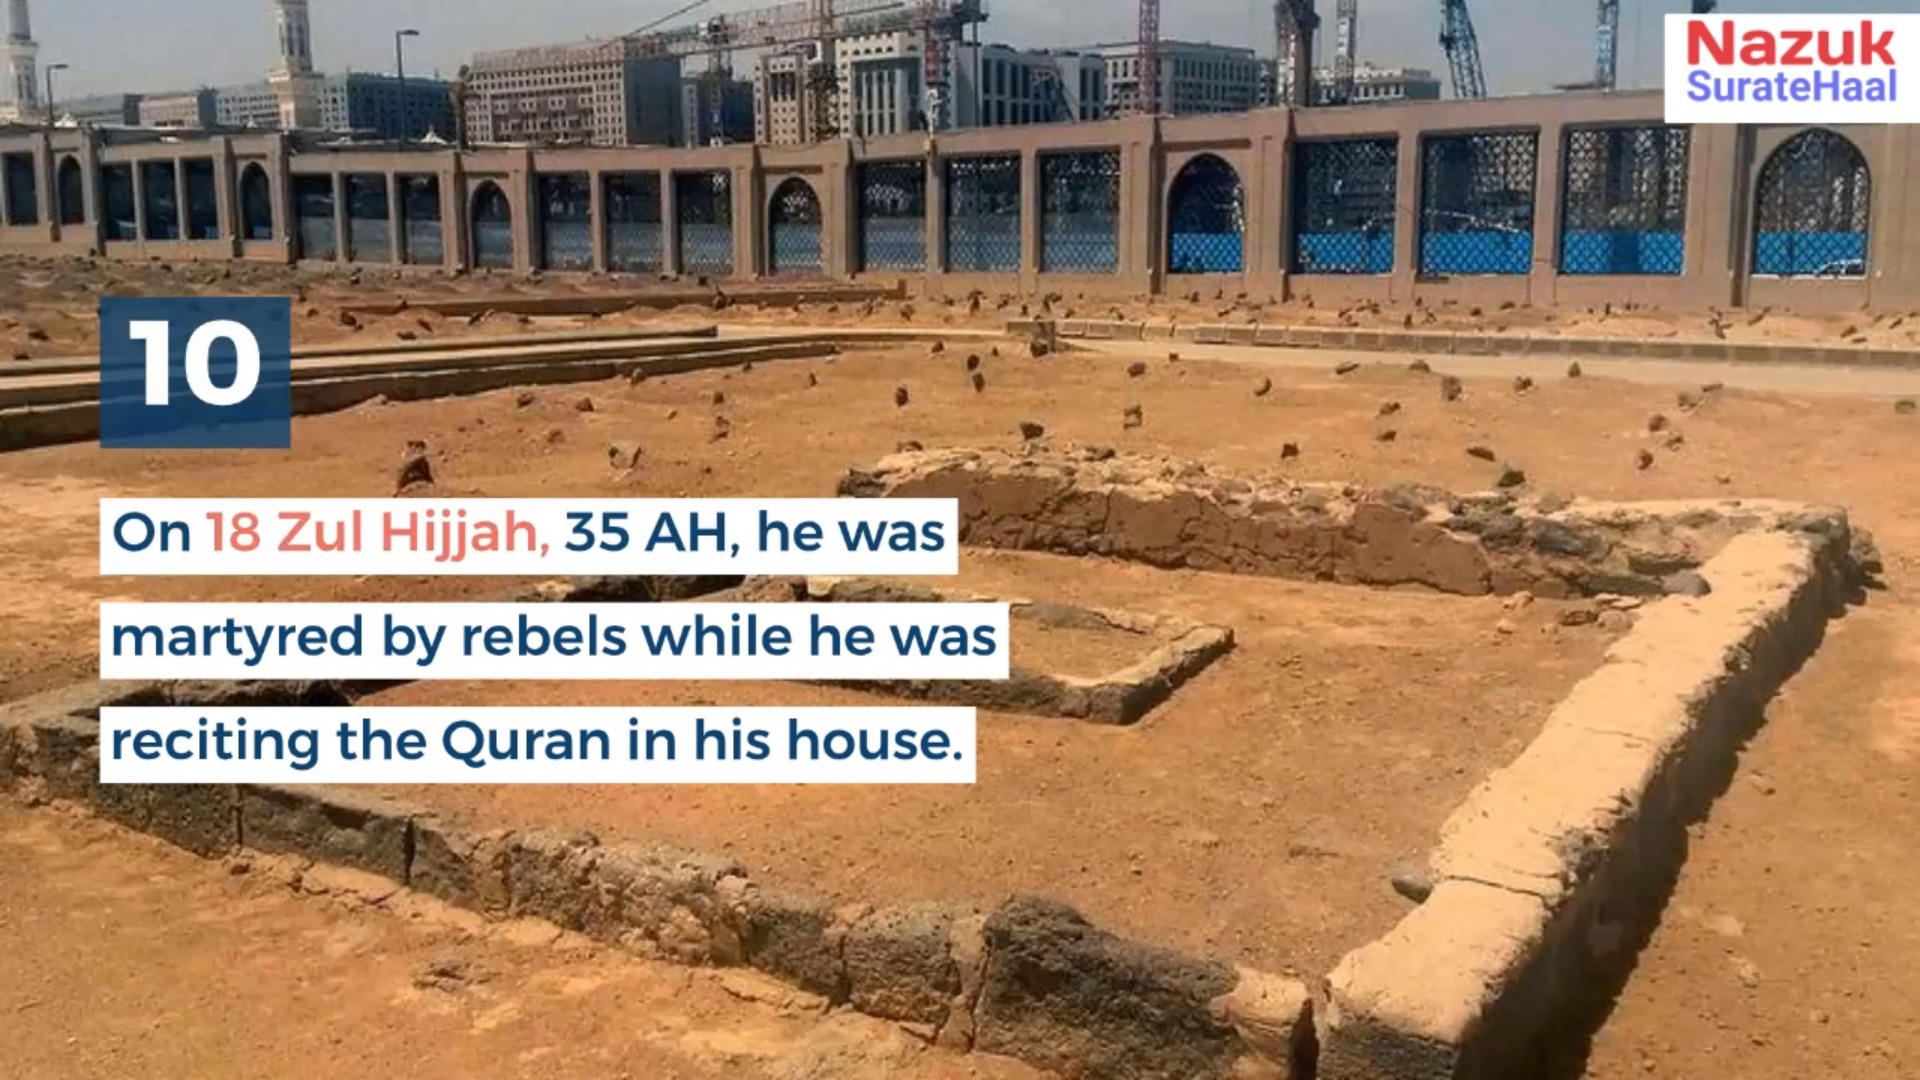 On 18 Zul Hijjah, 35 AH, he was martyred by rebels while he wasreciting the Quran in his house. He was 84 years old at the time.